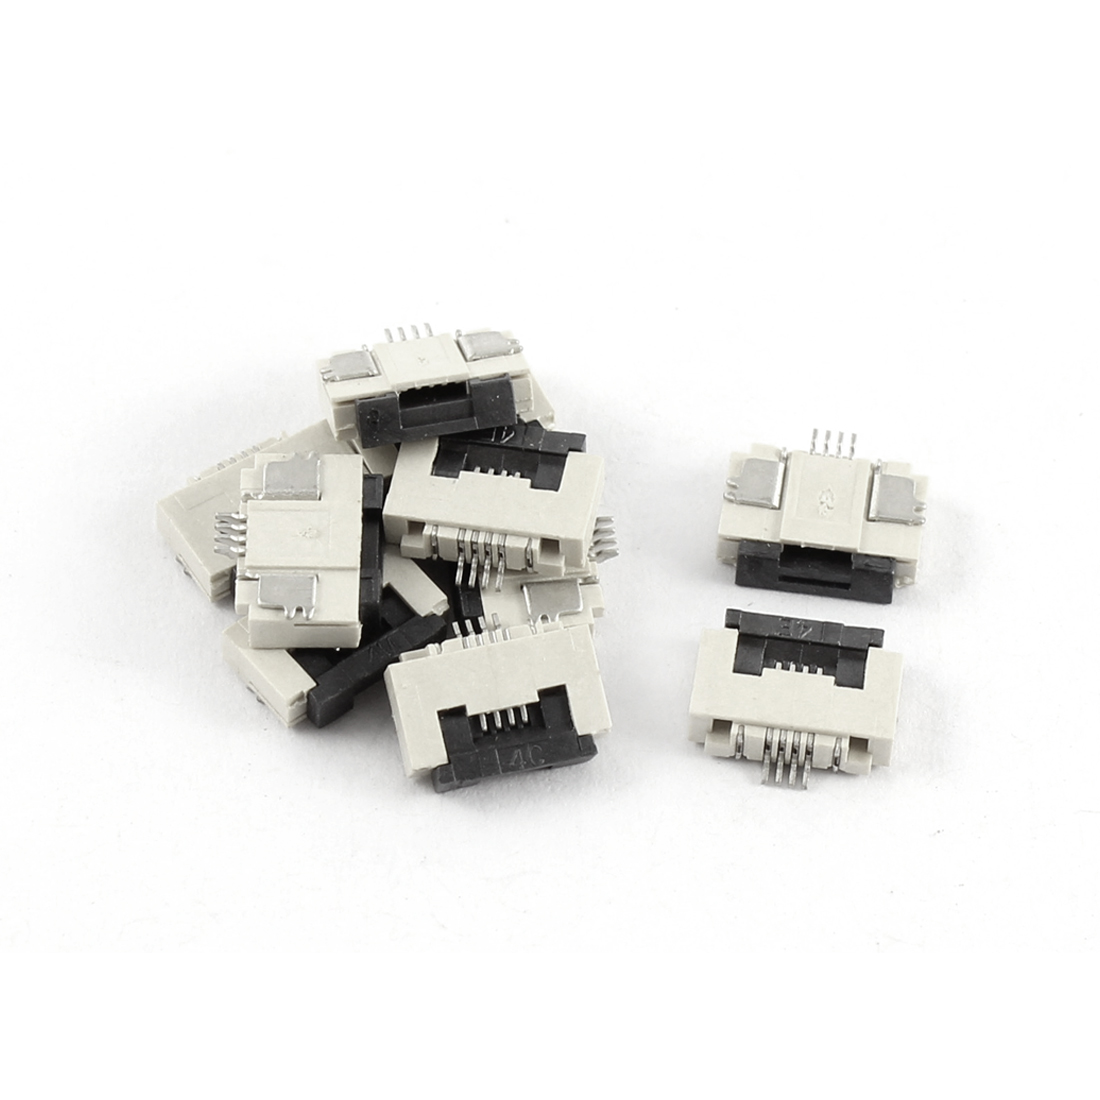 10Pcs Clamshell Type Bottom Port 4Pin 0.5mm Pitch FFC FPC Sockets Connector